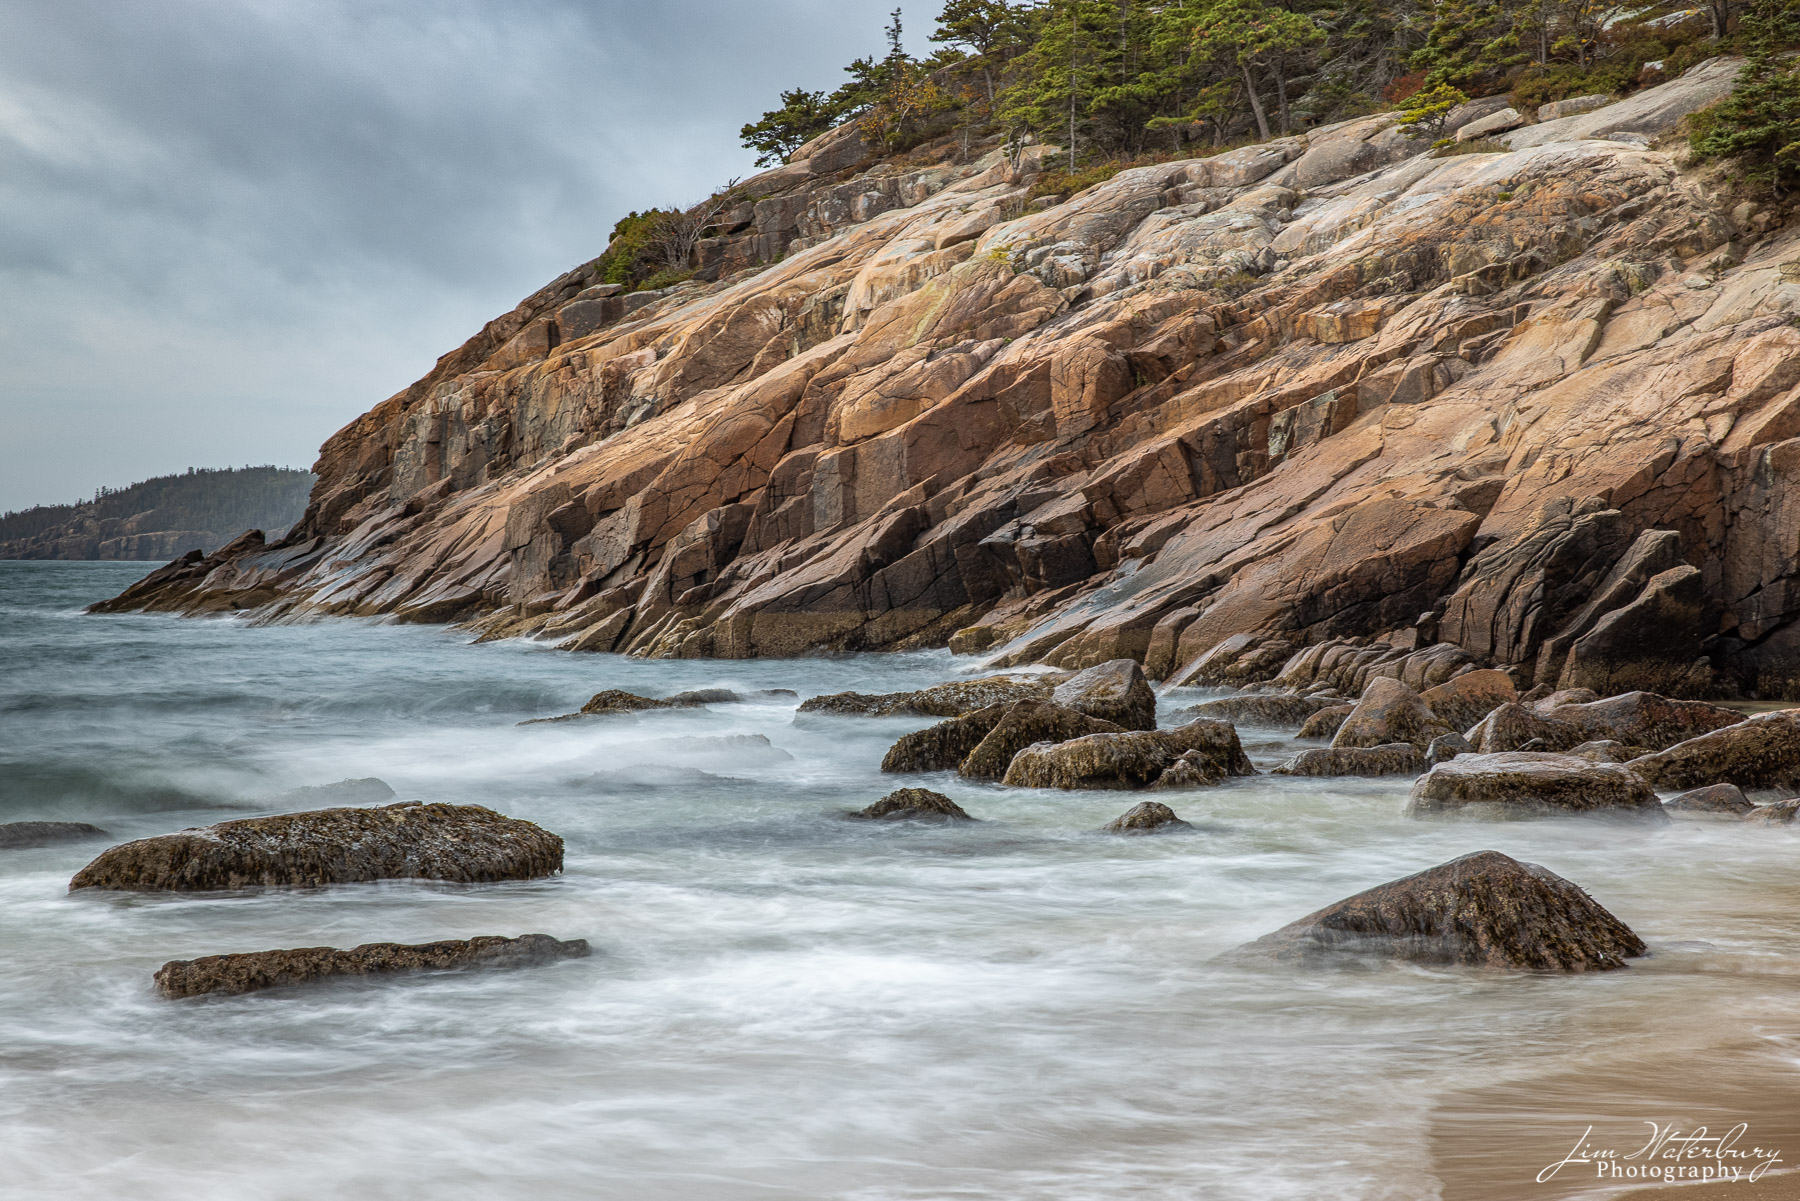 The rocky shore at Sand Beach, Acadia National Park, bathed by the warm light of sunrise.